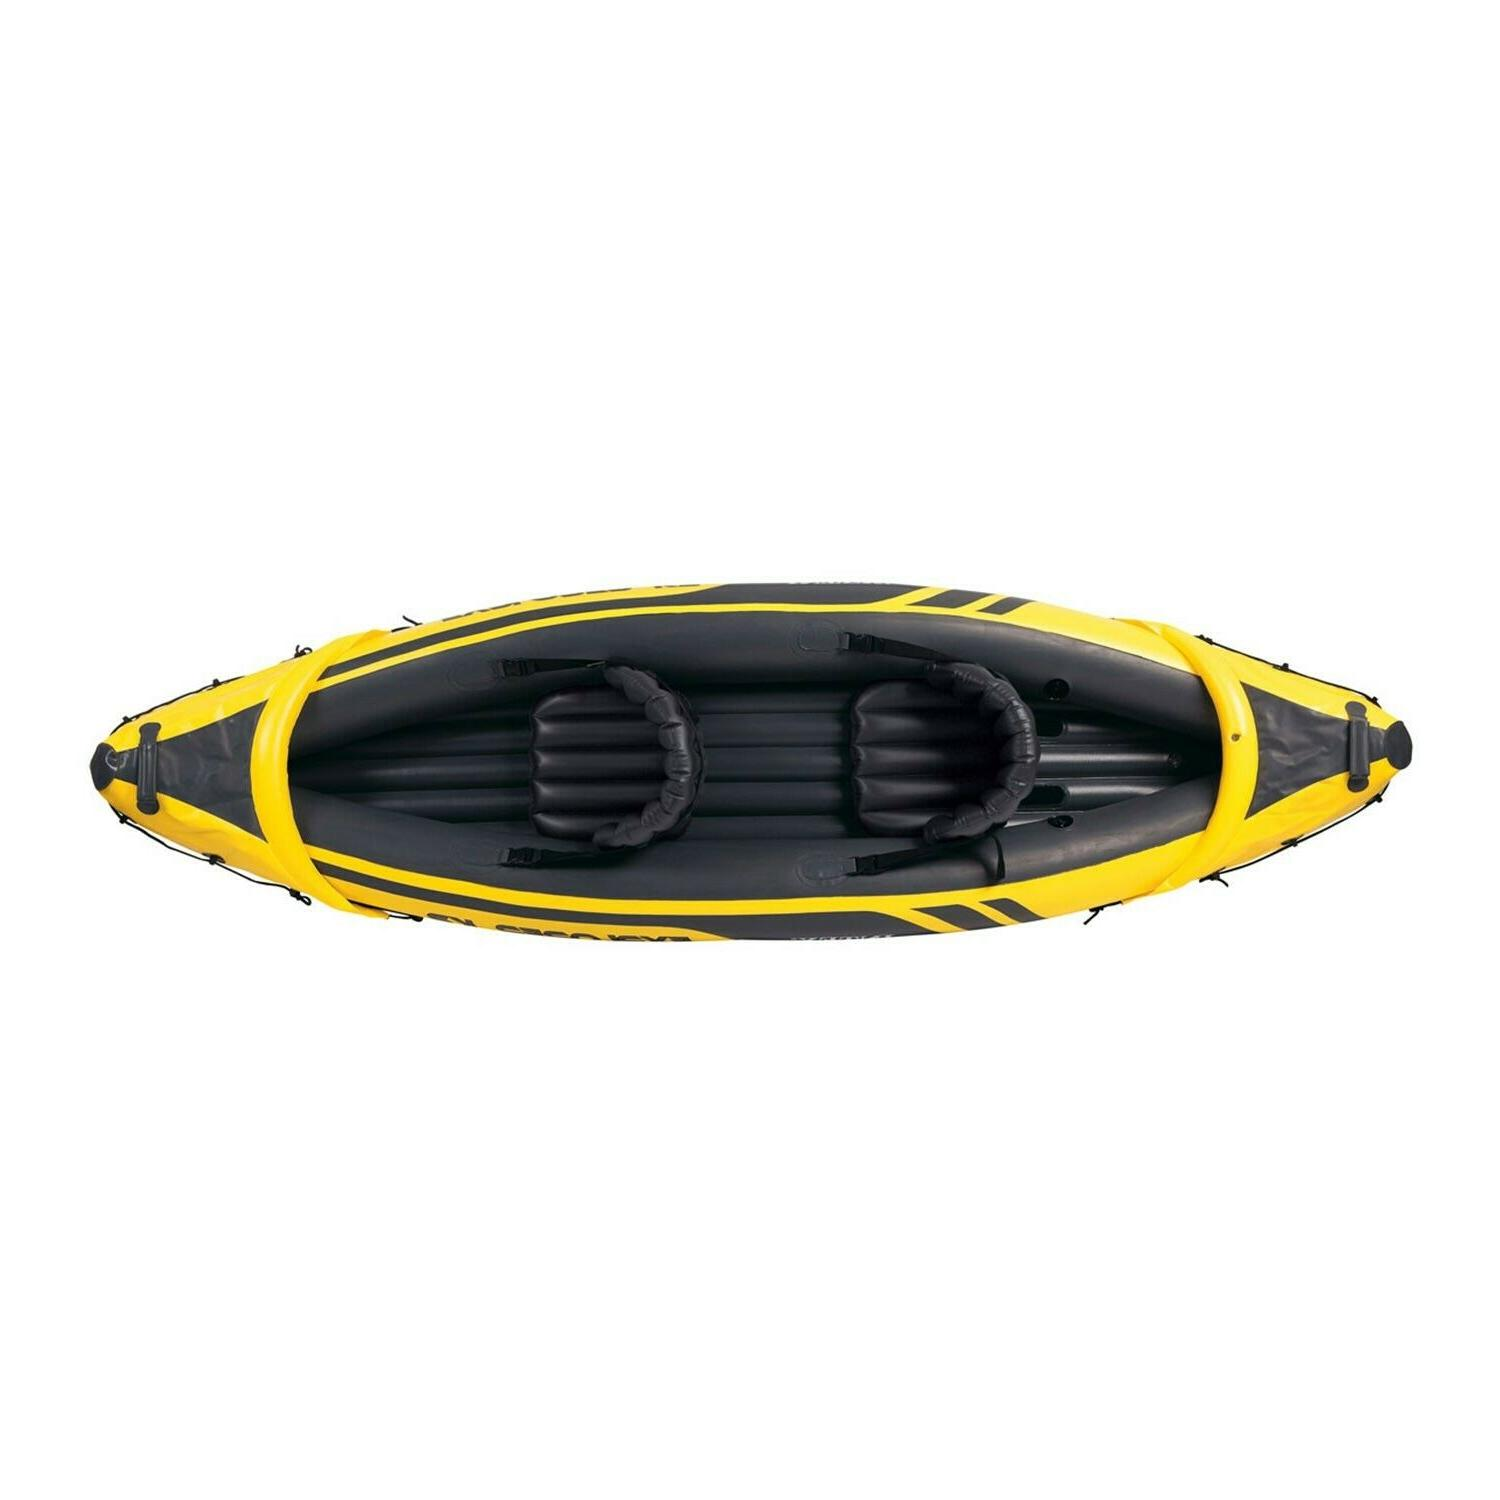 Intex Explorer with oars and hand pump, from